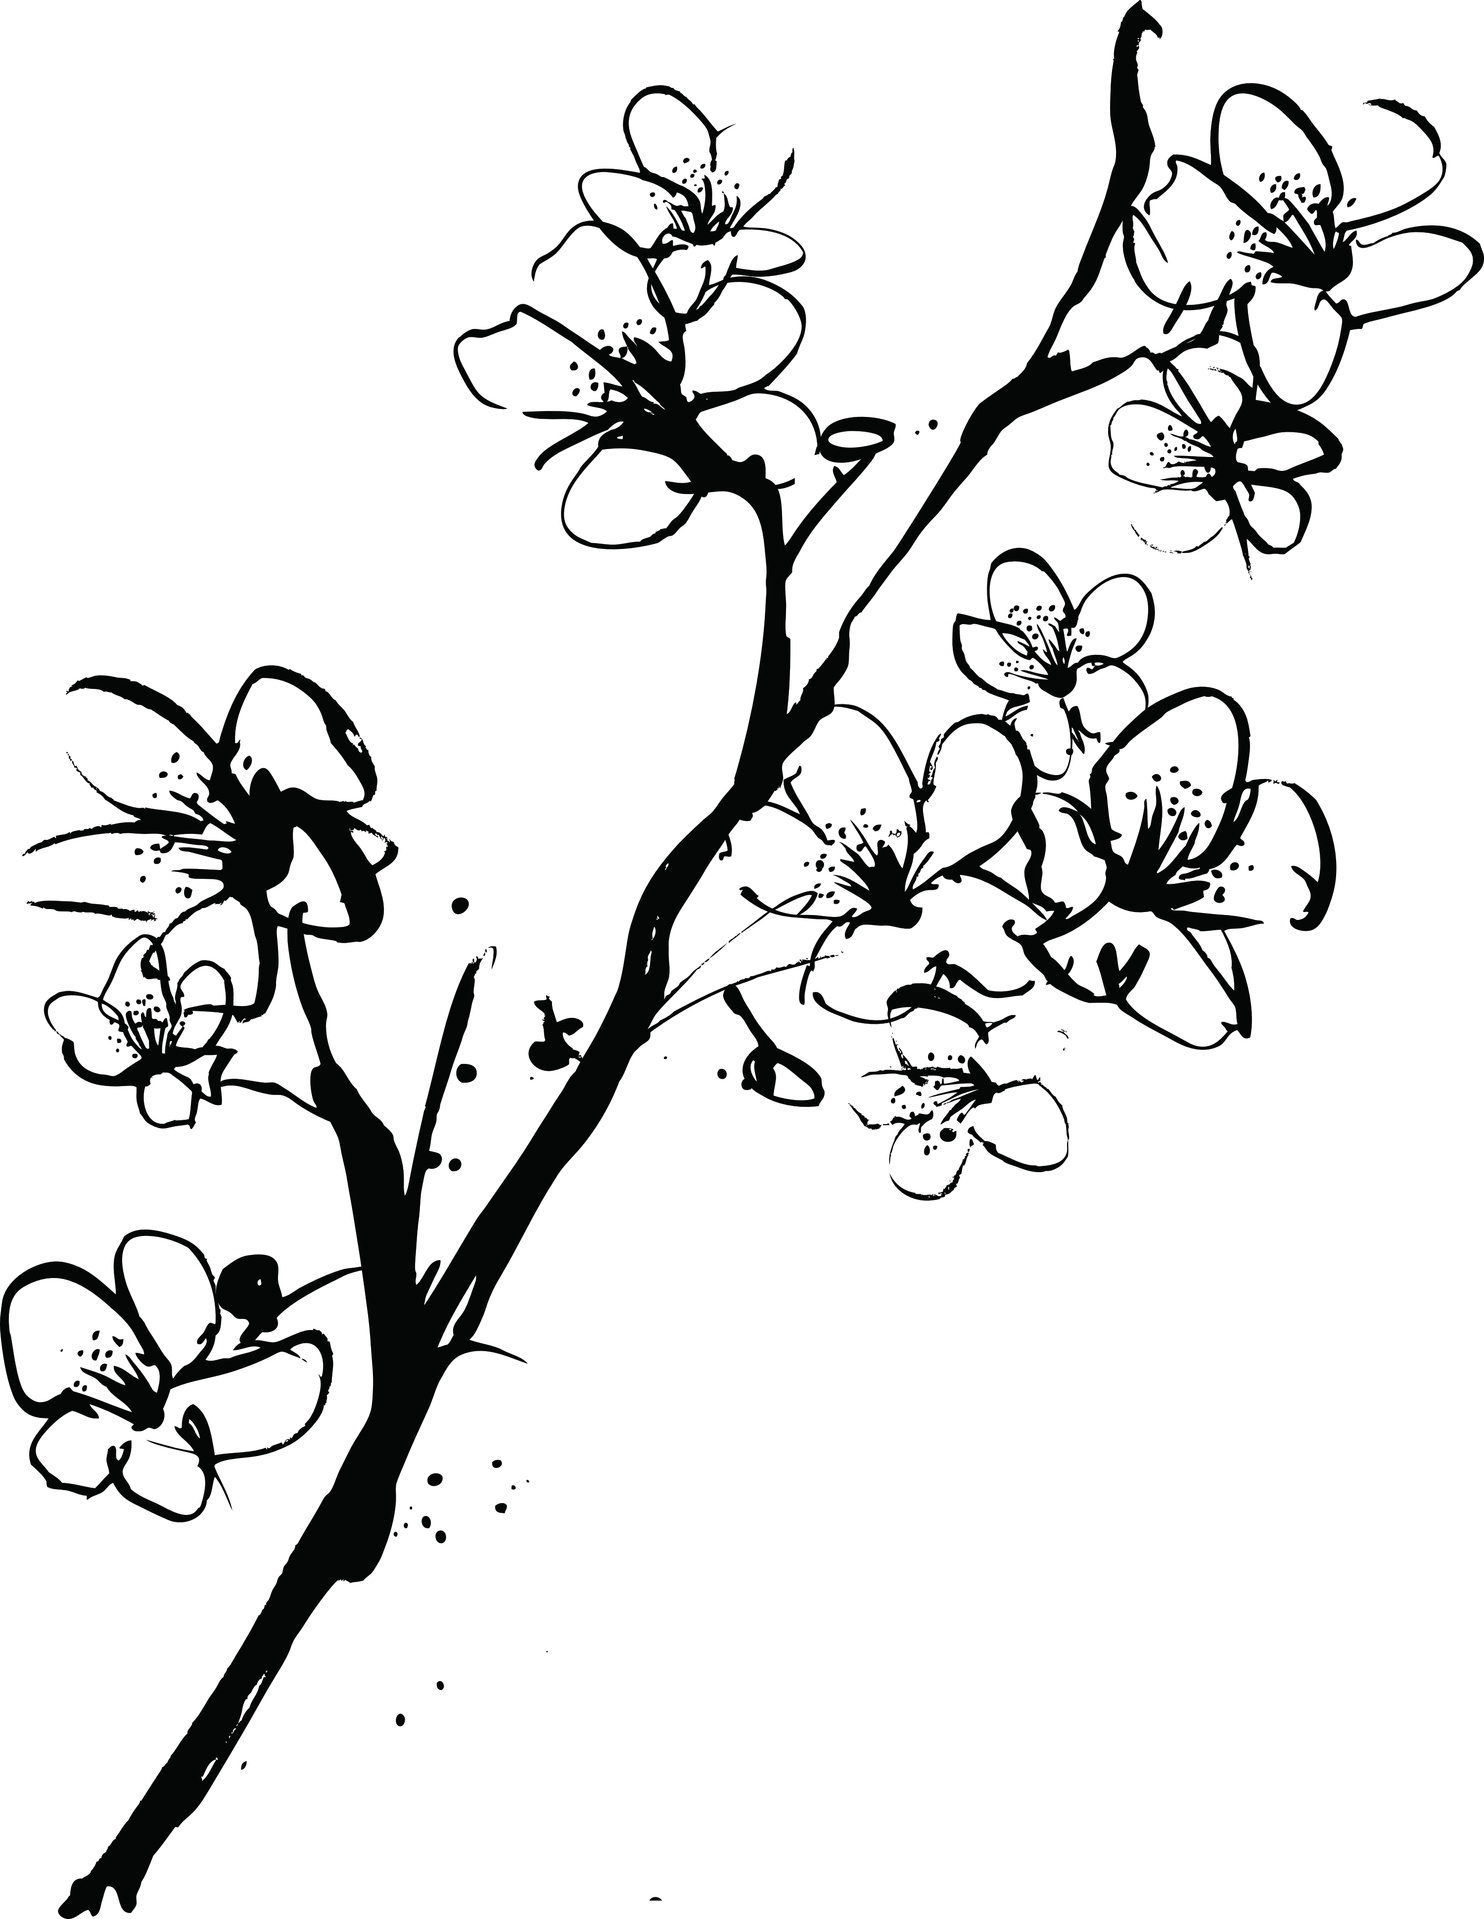 how to draw a cherry blossom tree cherry blossom pencil drawing at getdrawings free download tree a how cherry blossom to draw